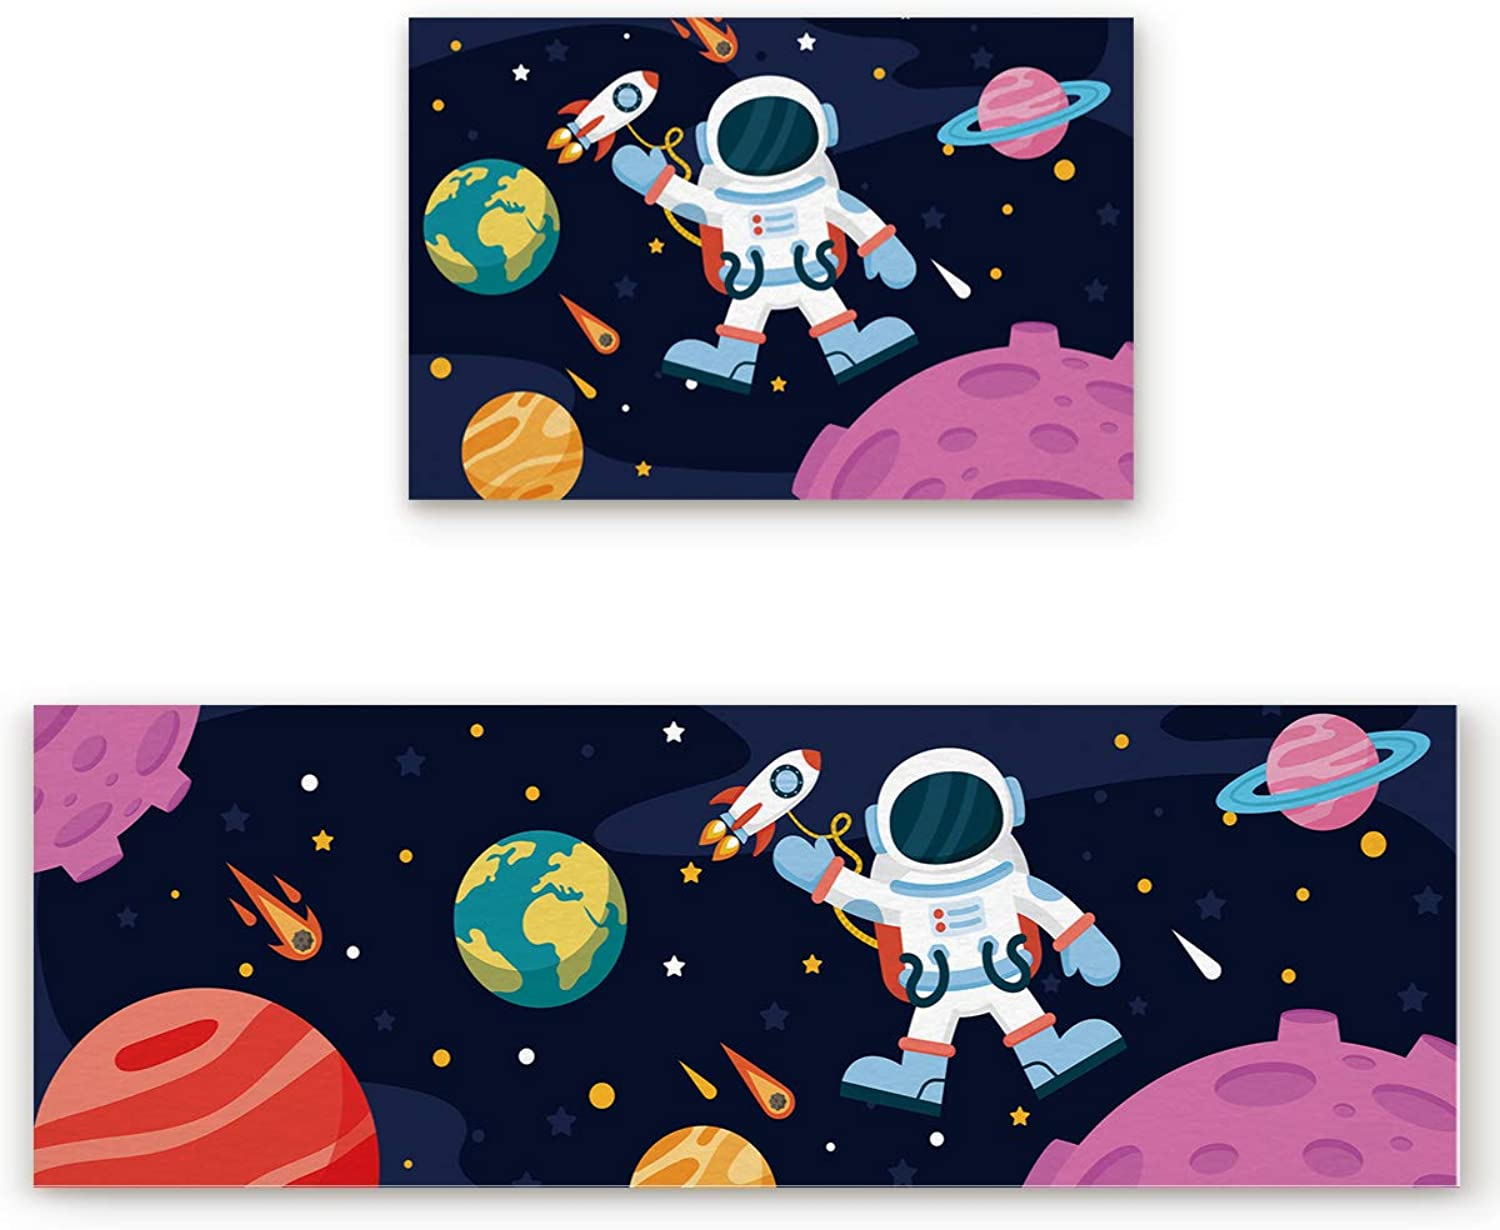 SODIKA 2 Pieces Kitchen Rug Set,Non-Skid Slip Washable Doormat Floor Runner Bathroom Area Rug Carpet,Space Exploration Creative Astronaut Illustration Moon Travel Pattern (19.7x31.5in+19.7x63 inches)